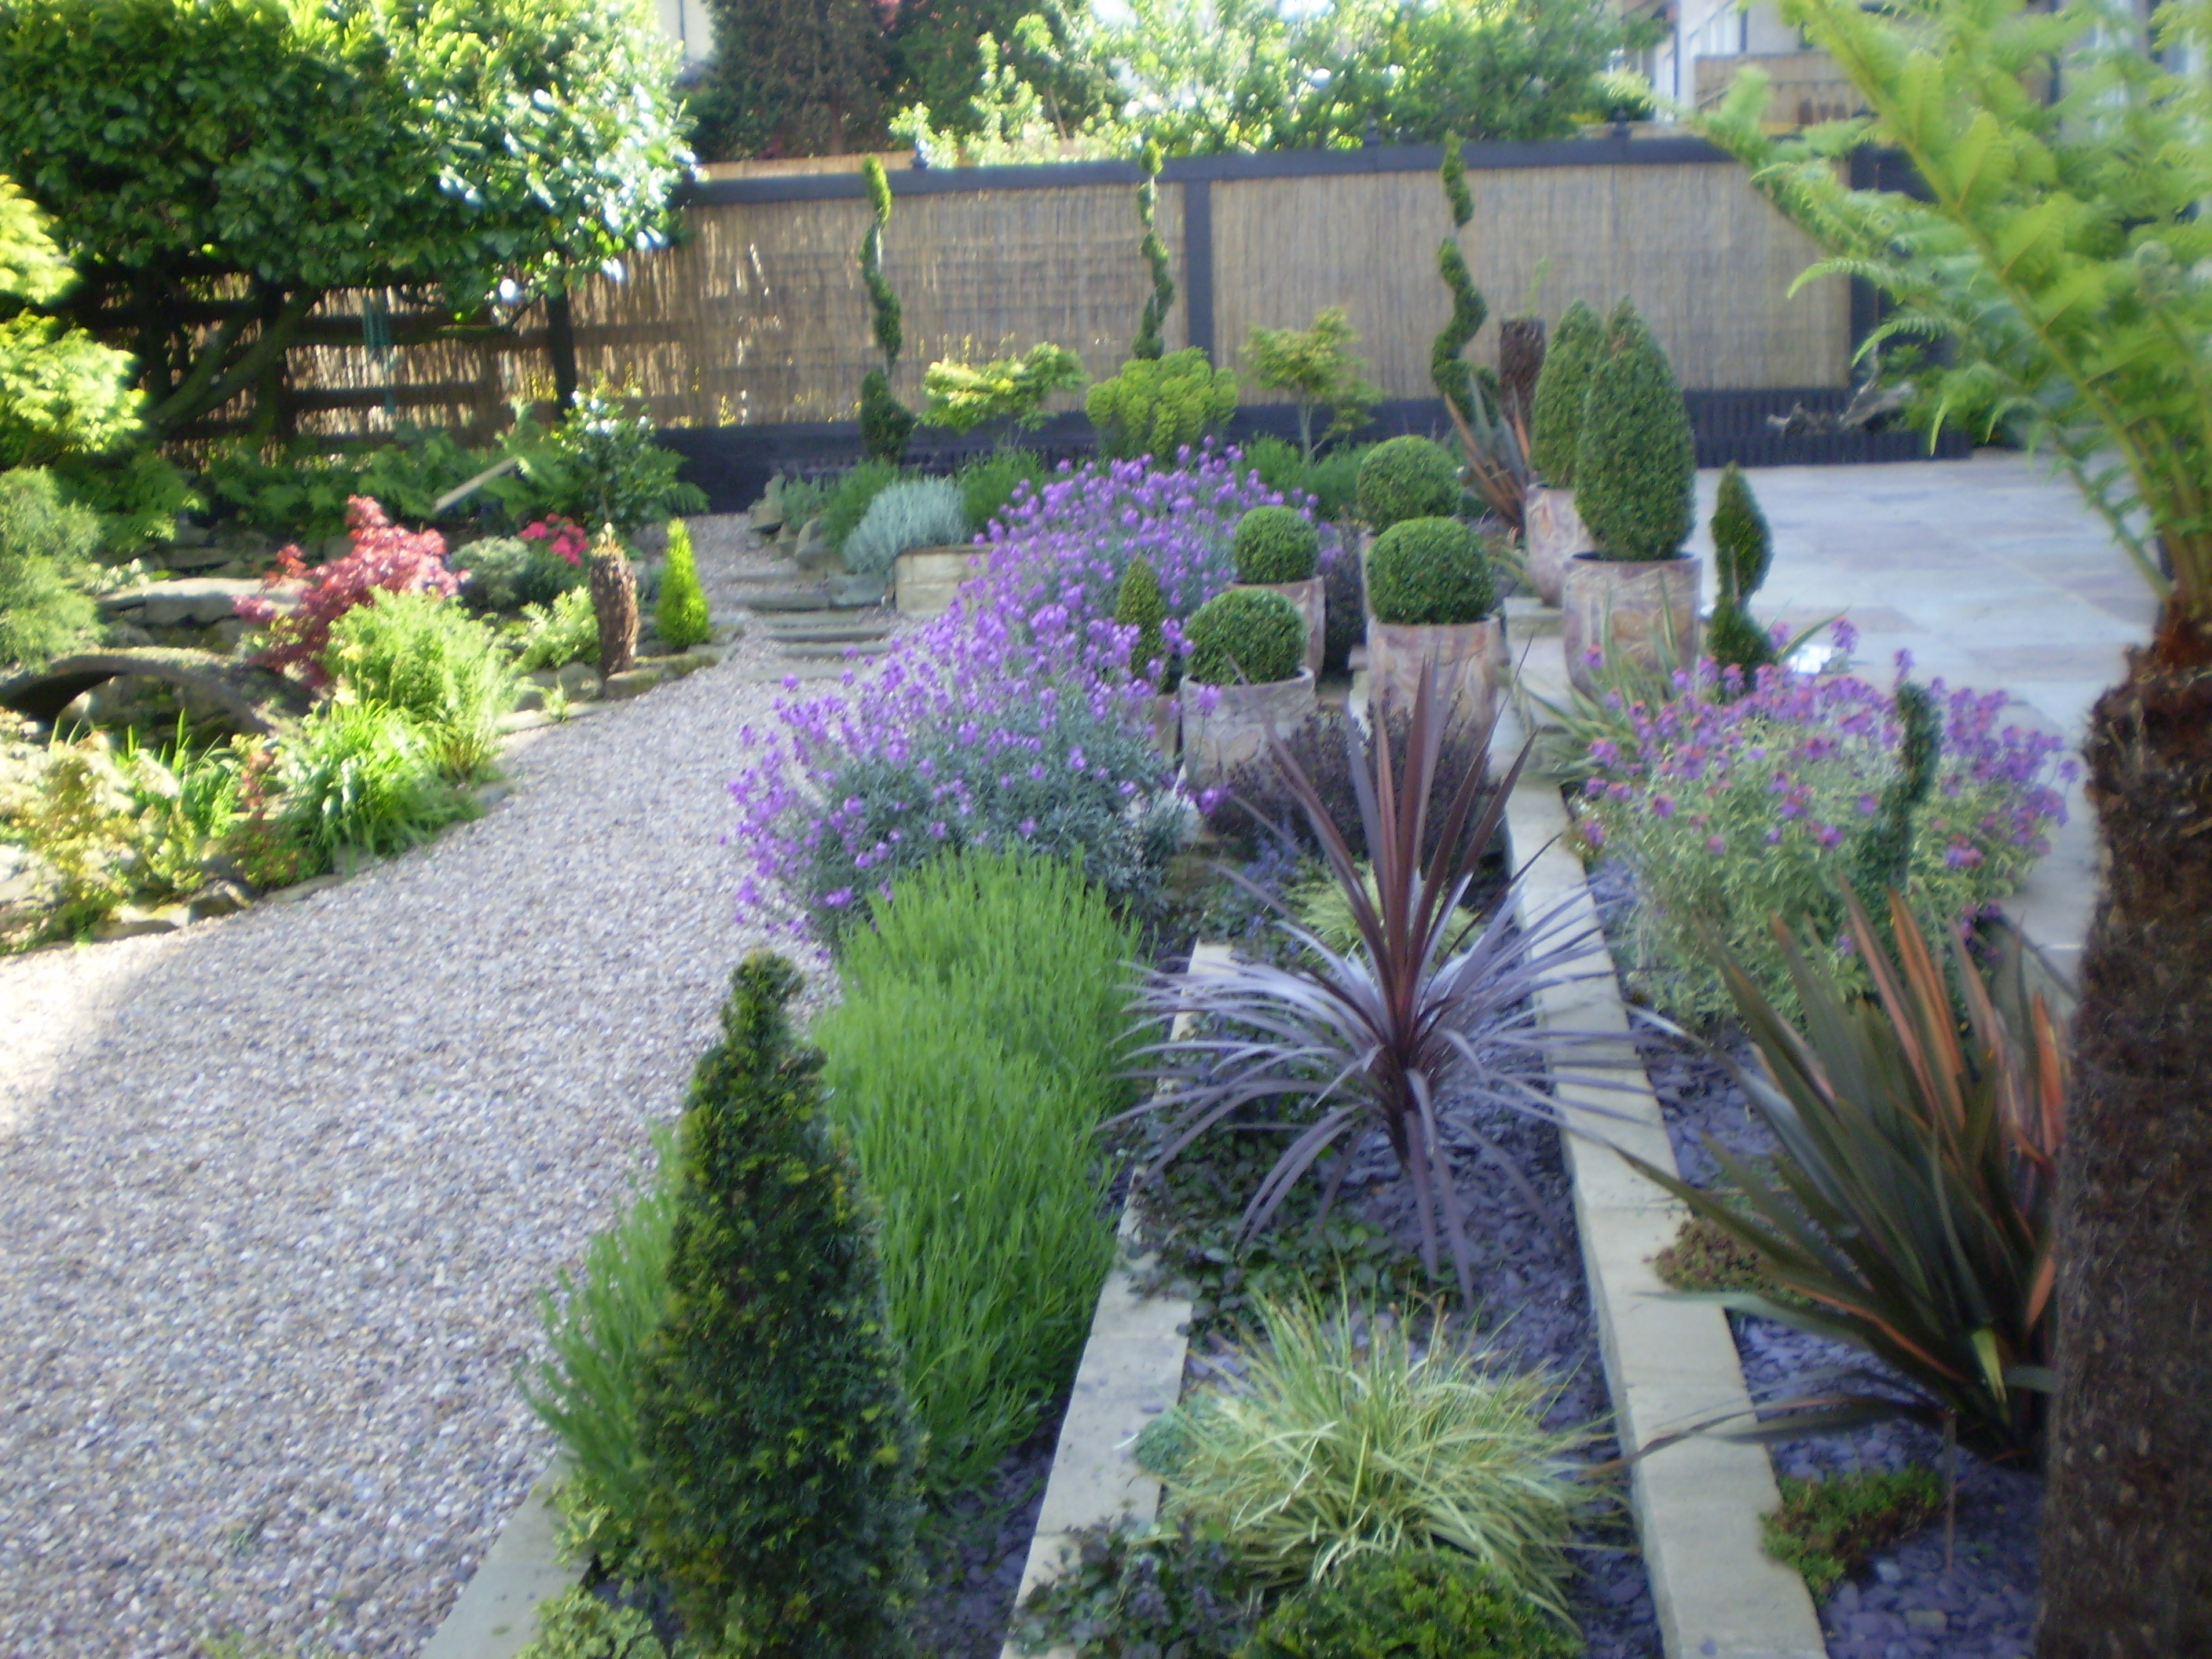 borders tidied of weeds and price to